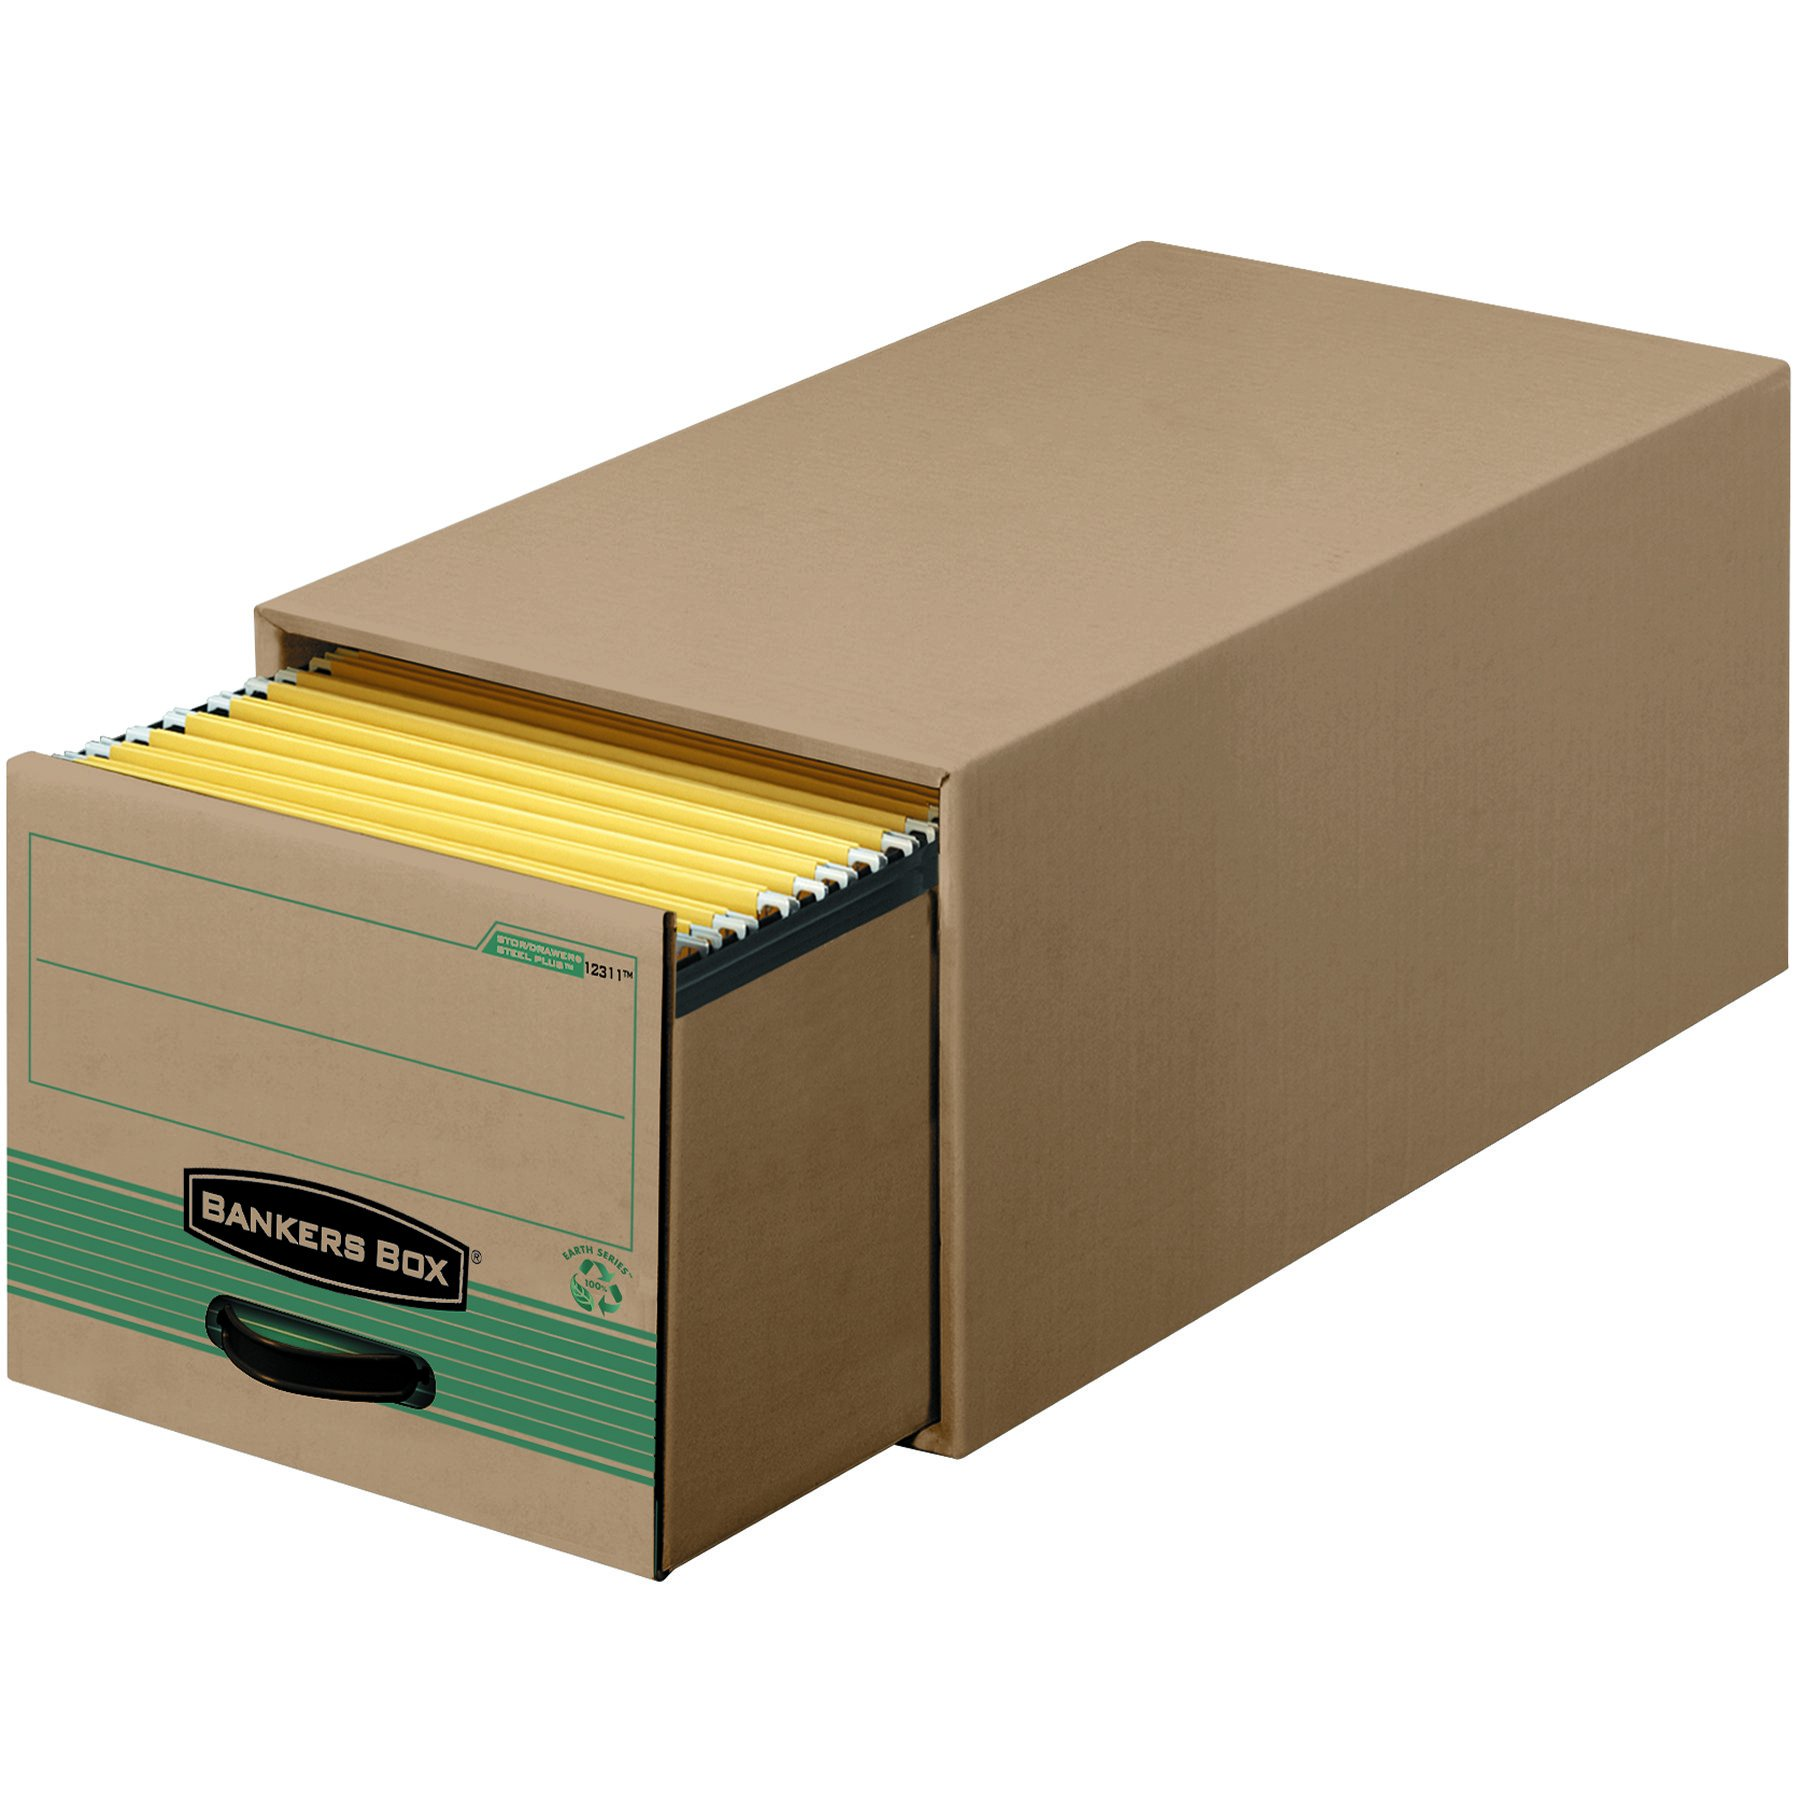 Bankers Box Stor/Drawer Steel Plus 100% Recycled Storage Drawers, Legal, 6 Pack (1231201)